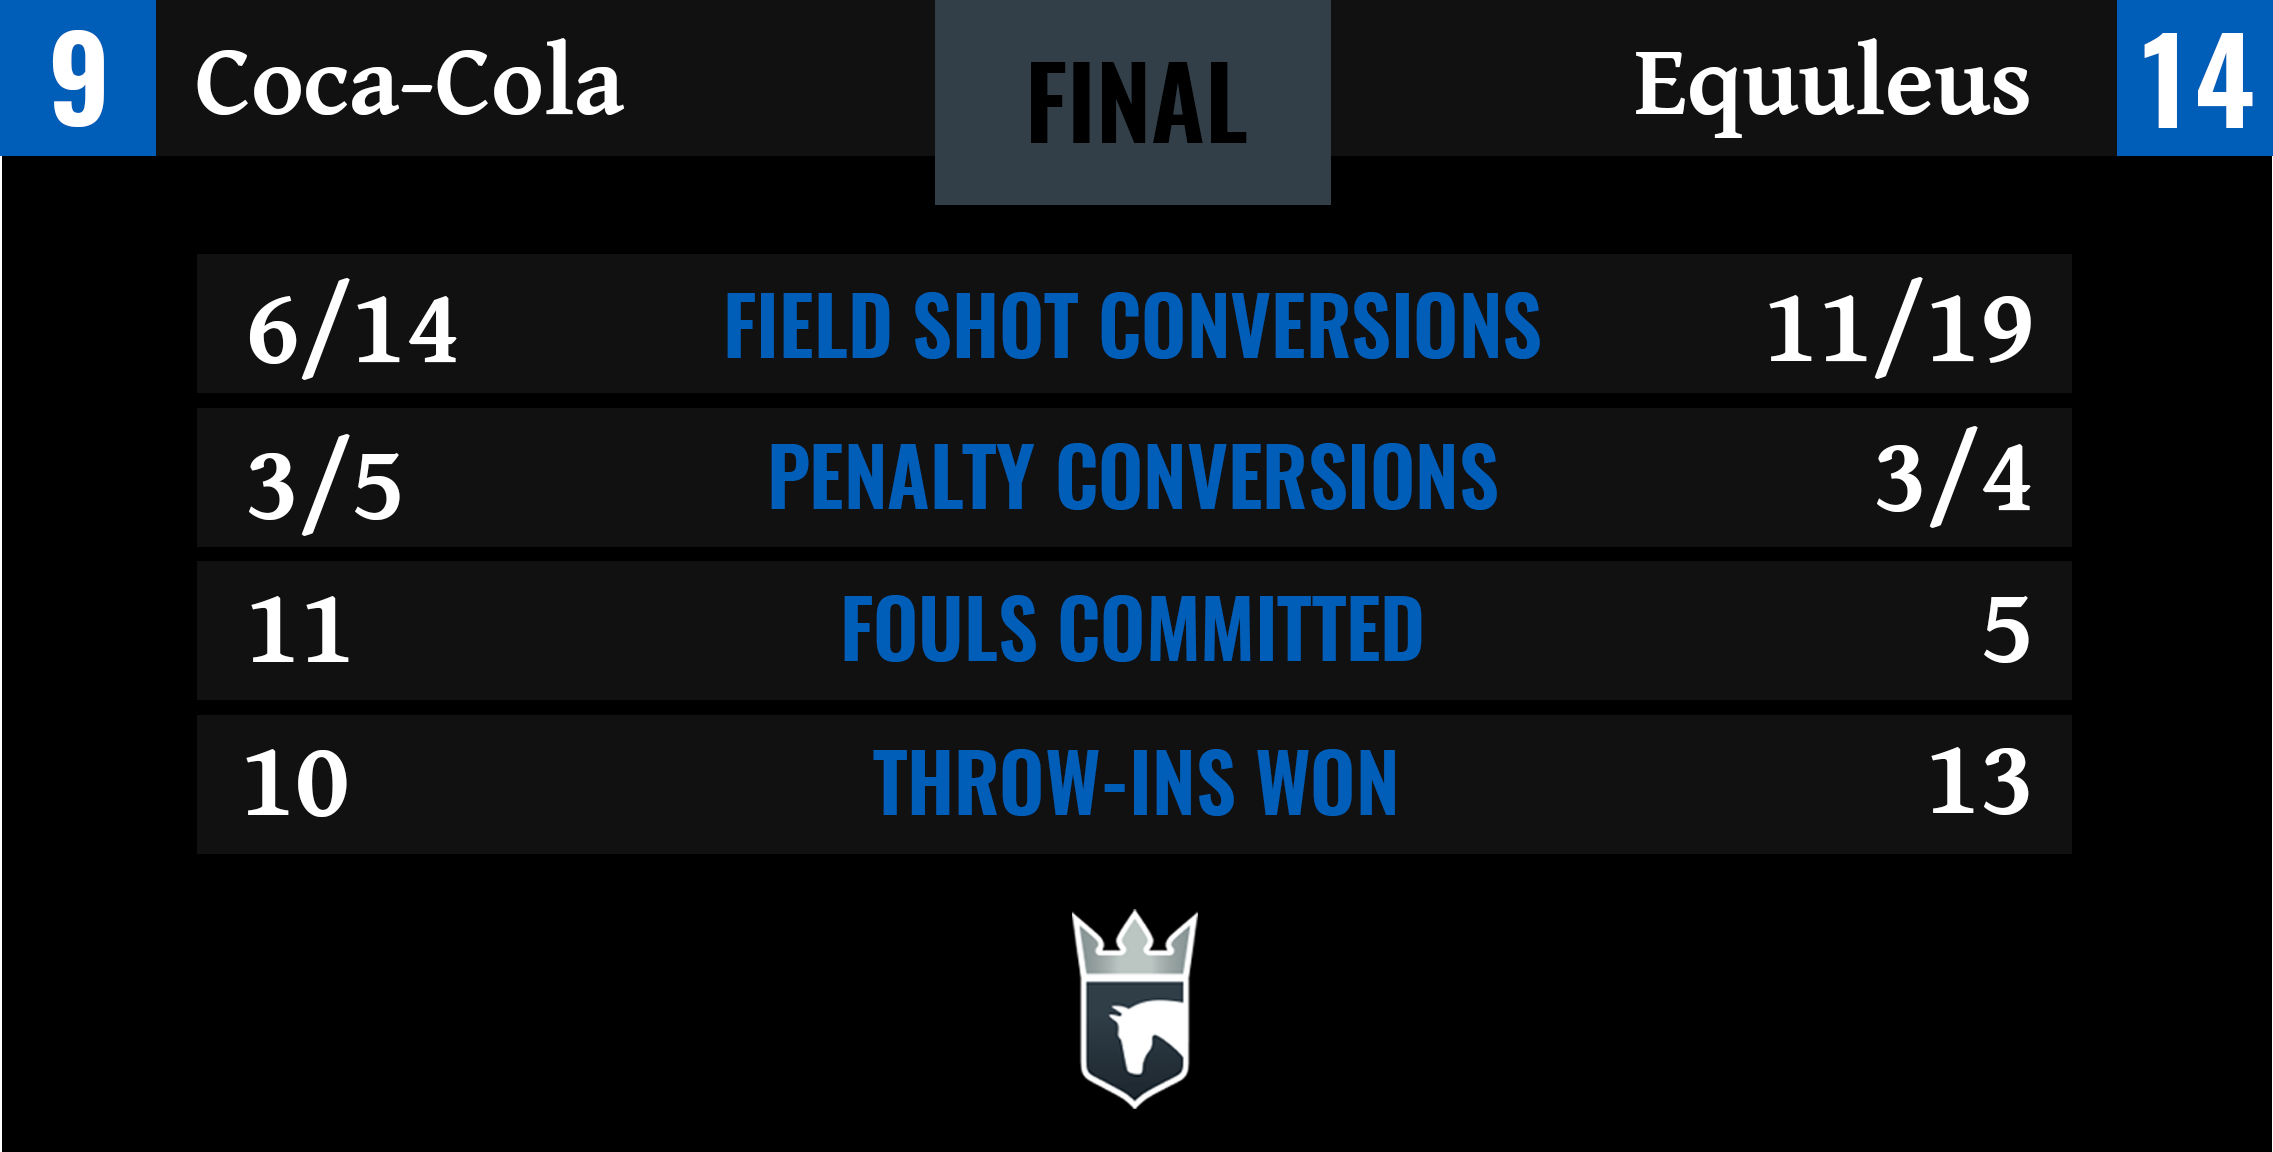 Coca-Cola vs Equuleus Final Stats